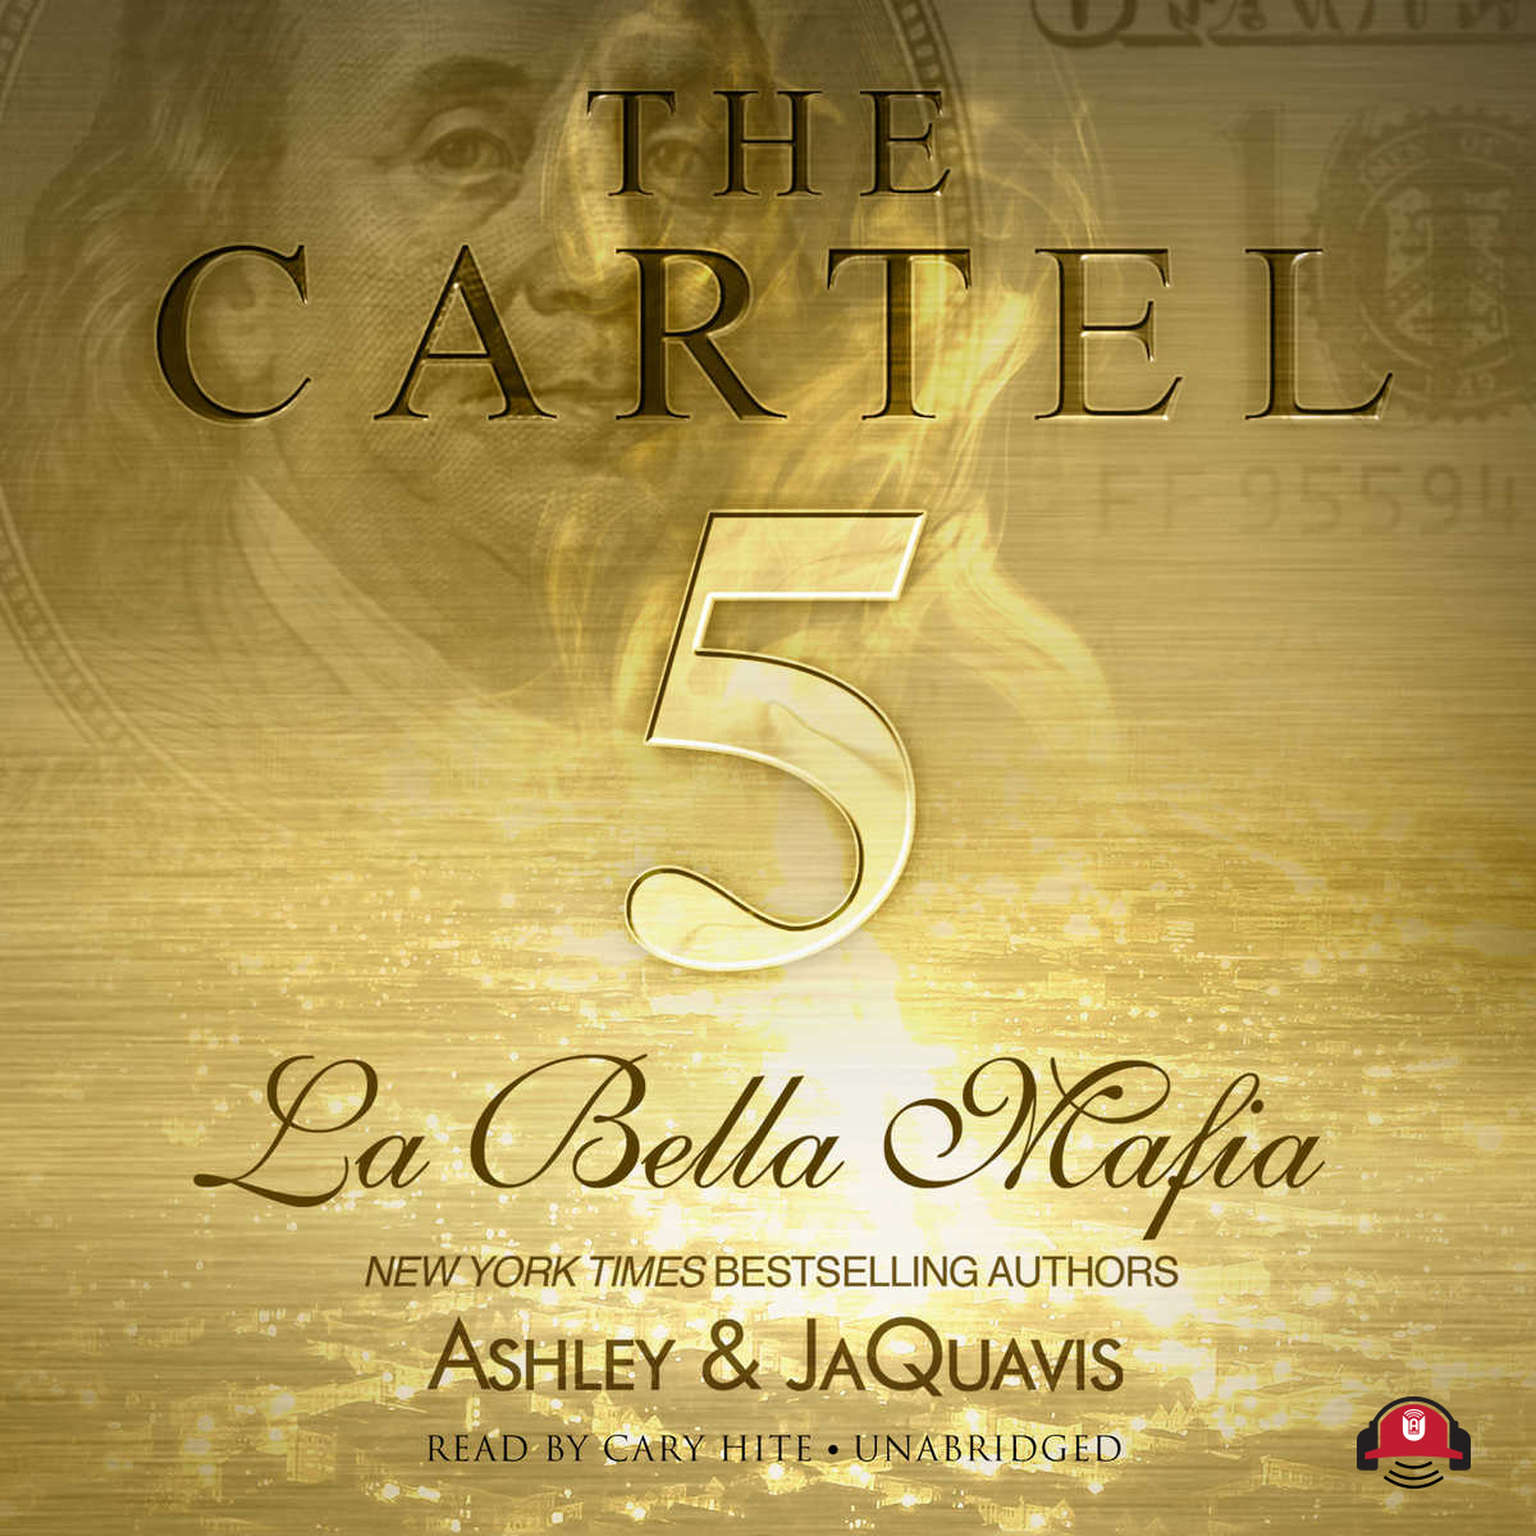 Printable The Cartel 5: La Bella Mafia Audiobook Cover Art